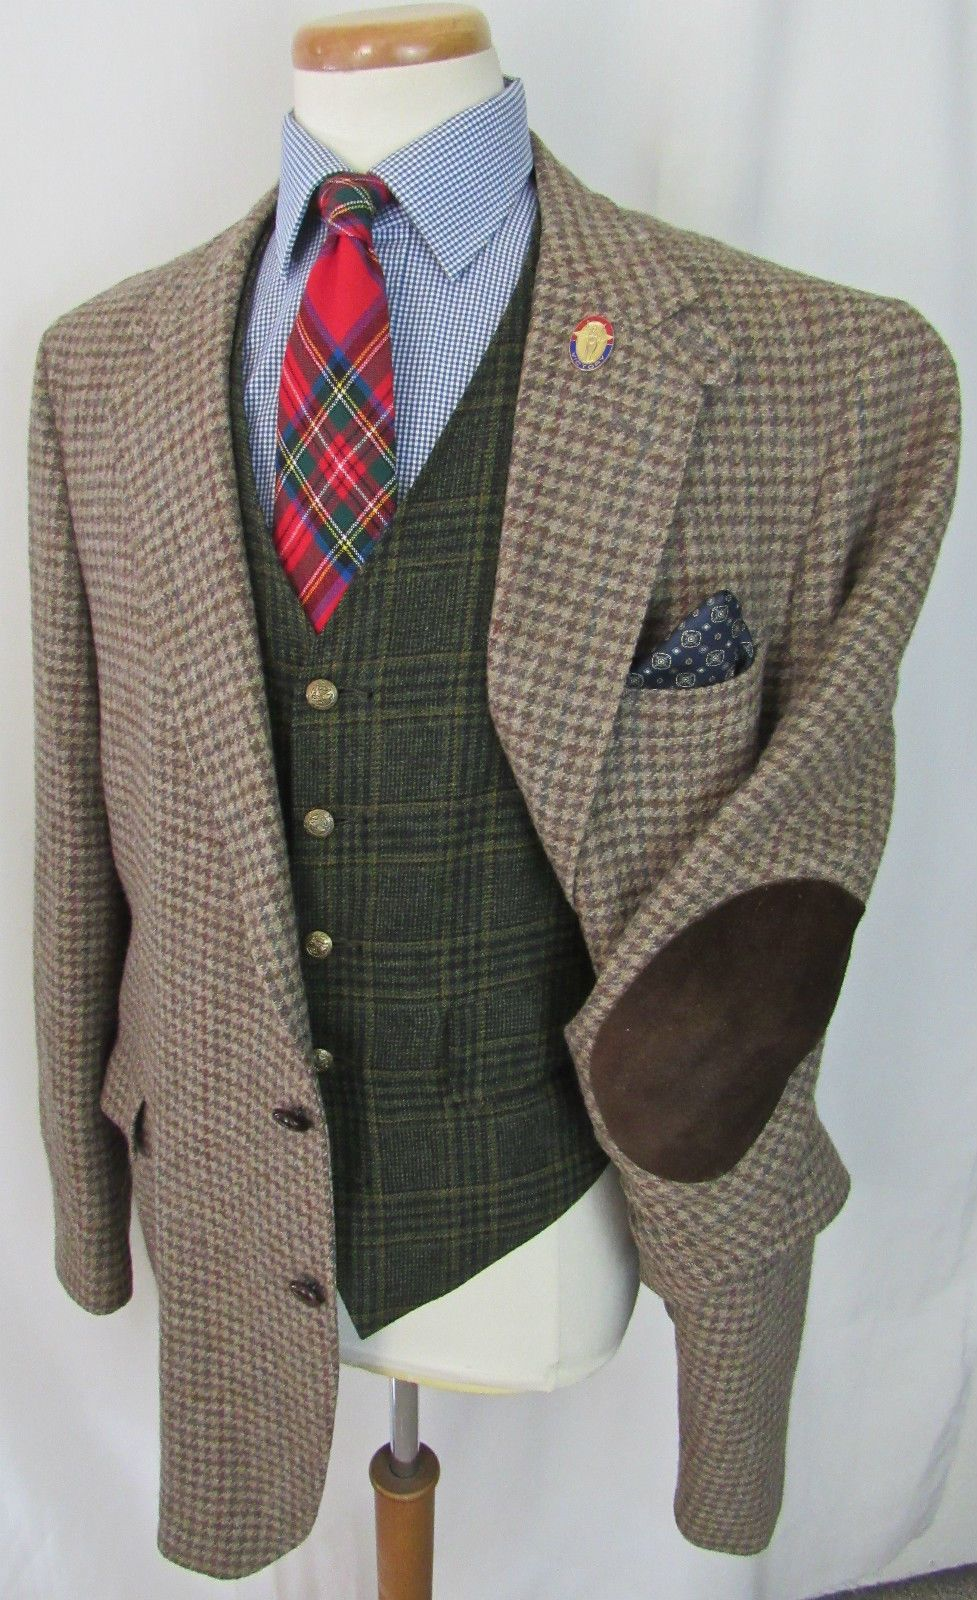 8514a99319c9b 1 of 7: Vtg Norfolk BELTED BACK Tweed Hunting blazer 46 L shooting jacket  ELBOW PATCHES